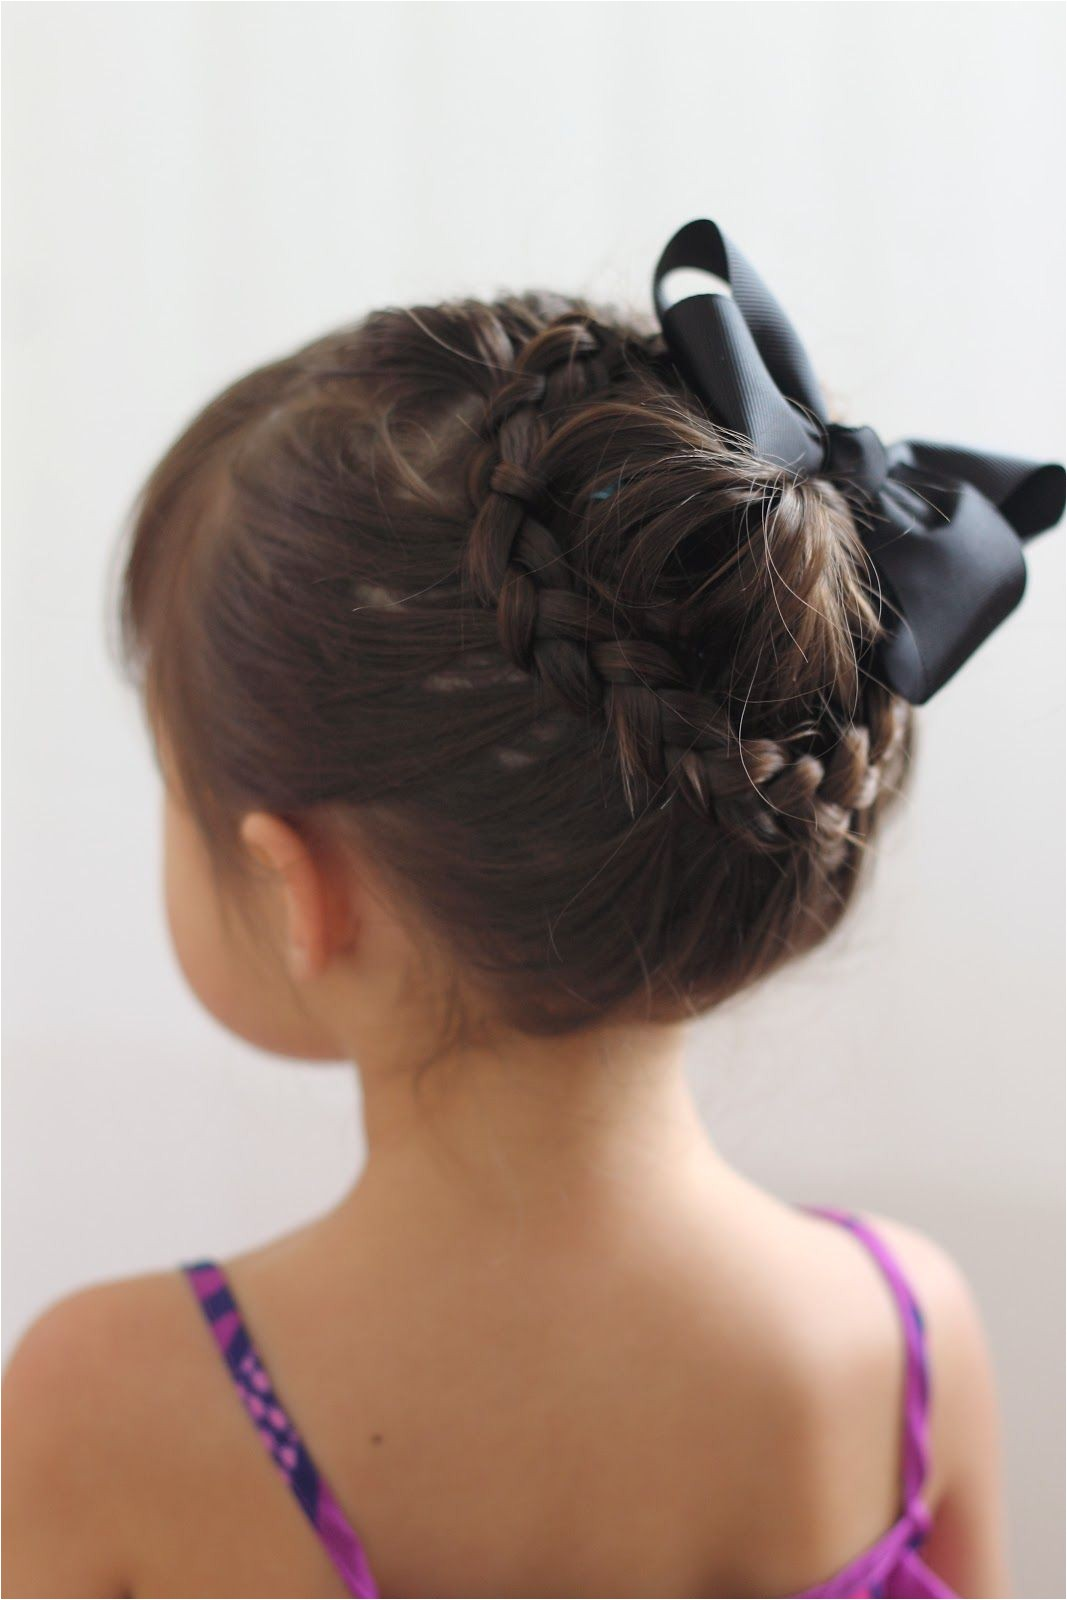 16 Toddler hair styles to mix up the pony tail and simple braids dutch braids french braid side pony tail braided pony messy bun side braid into a bun